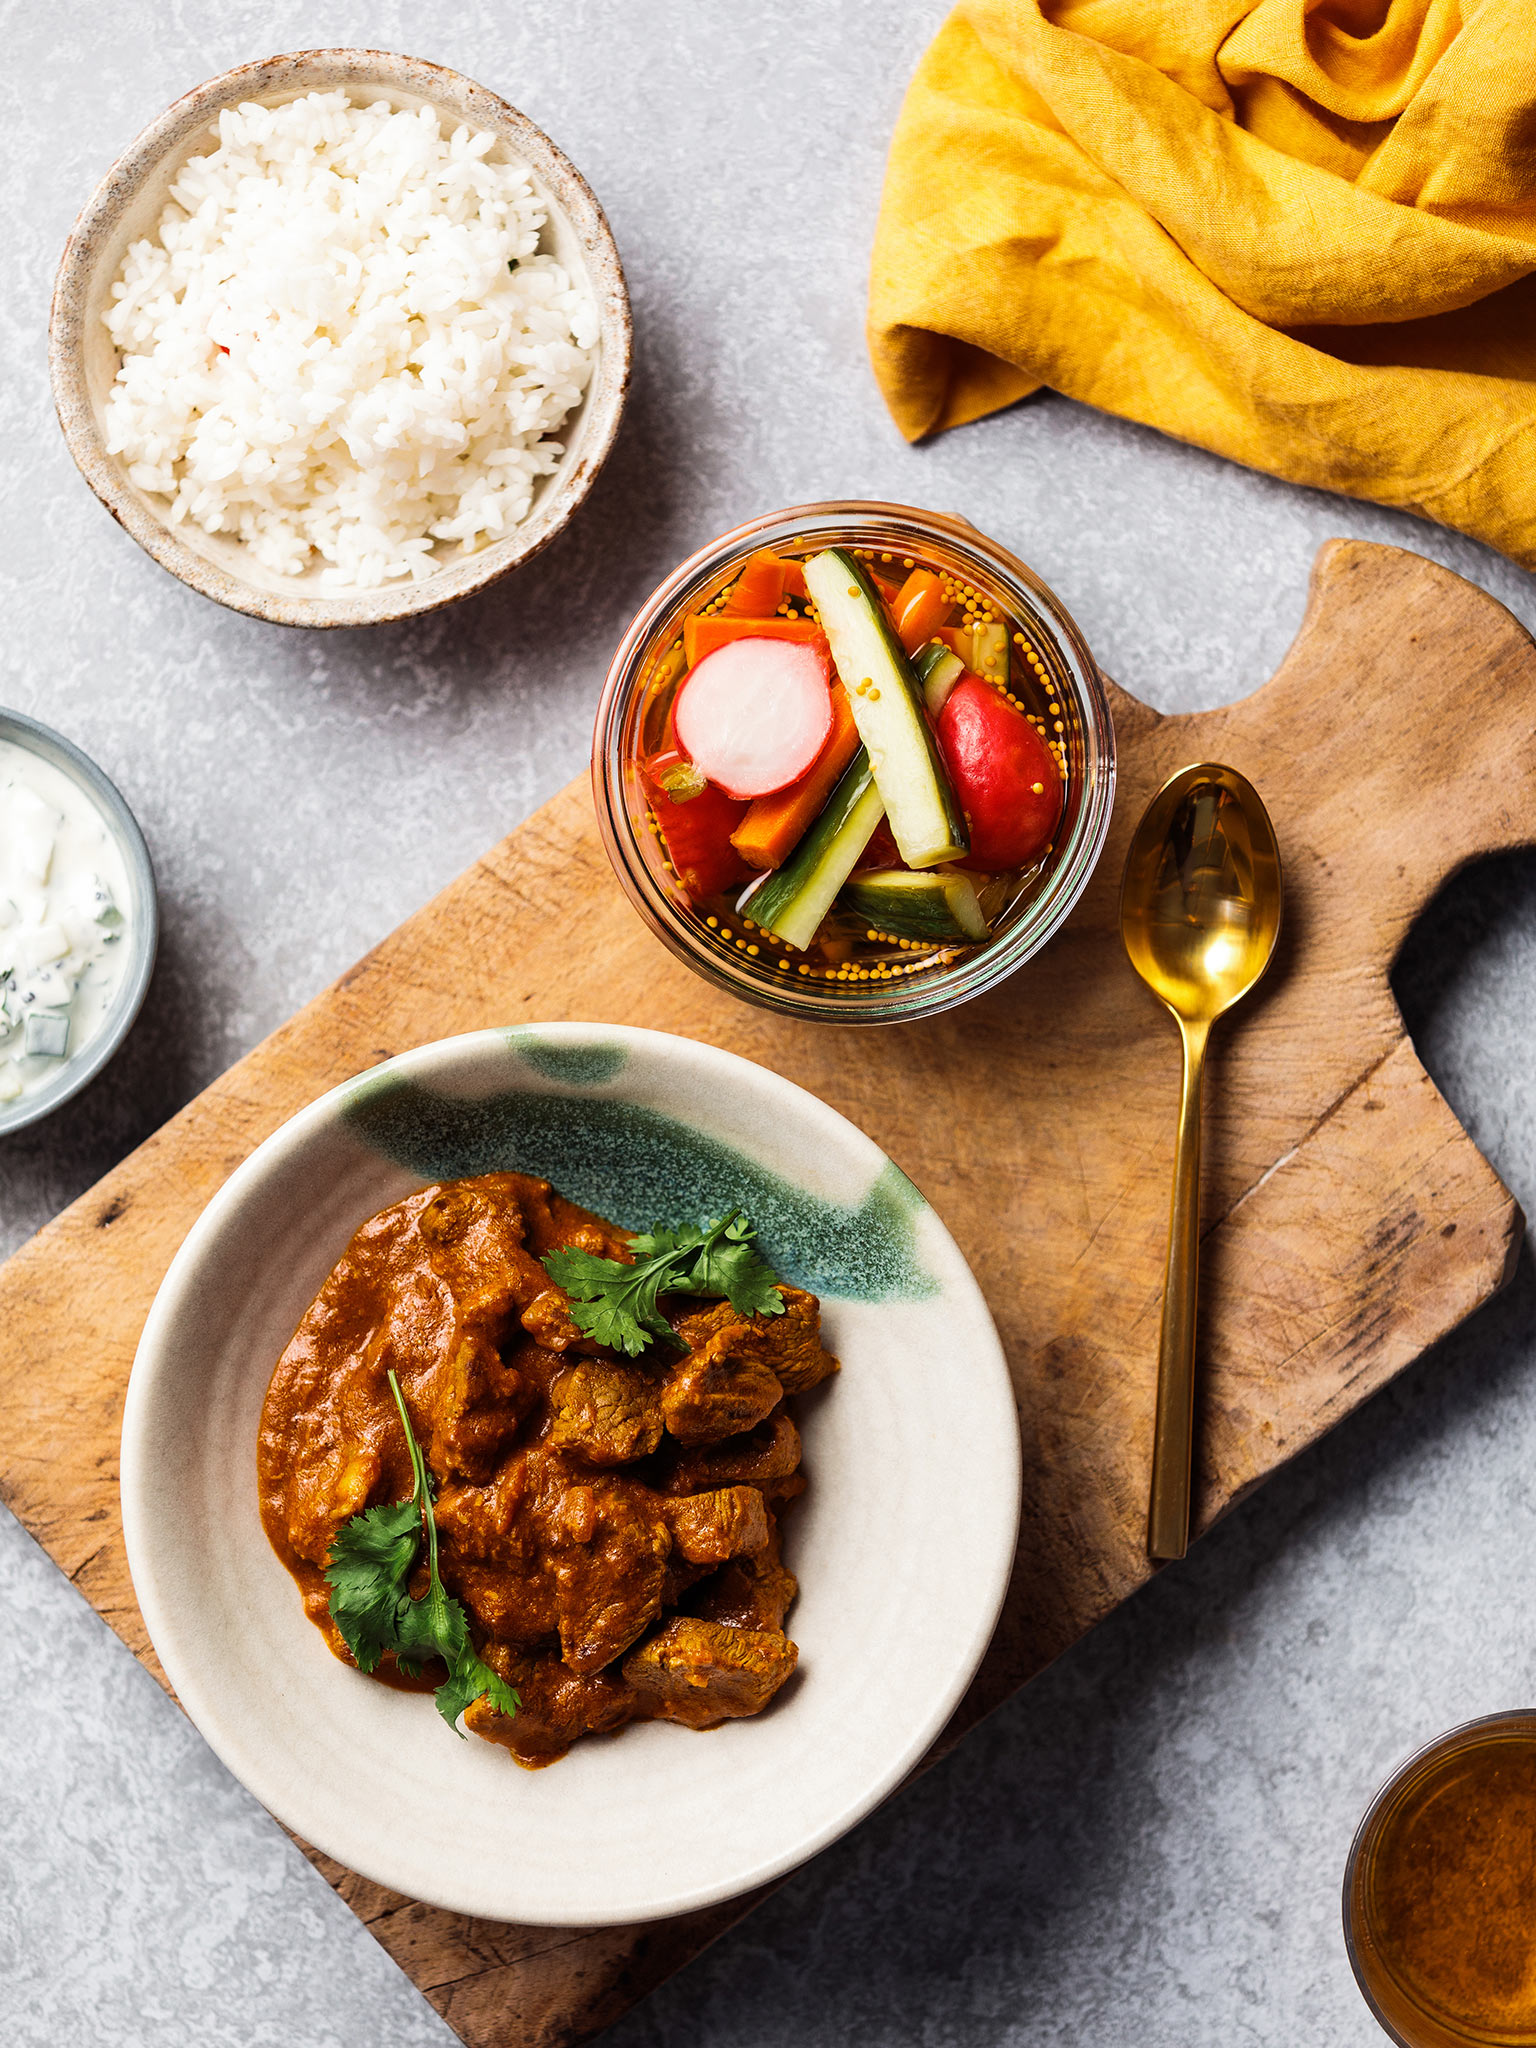 3-178-Passage-Lamb-Rogan-Josh-with-Pickled-Cucumber-and-Veg-002-web.jpg